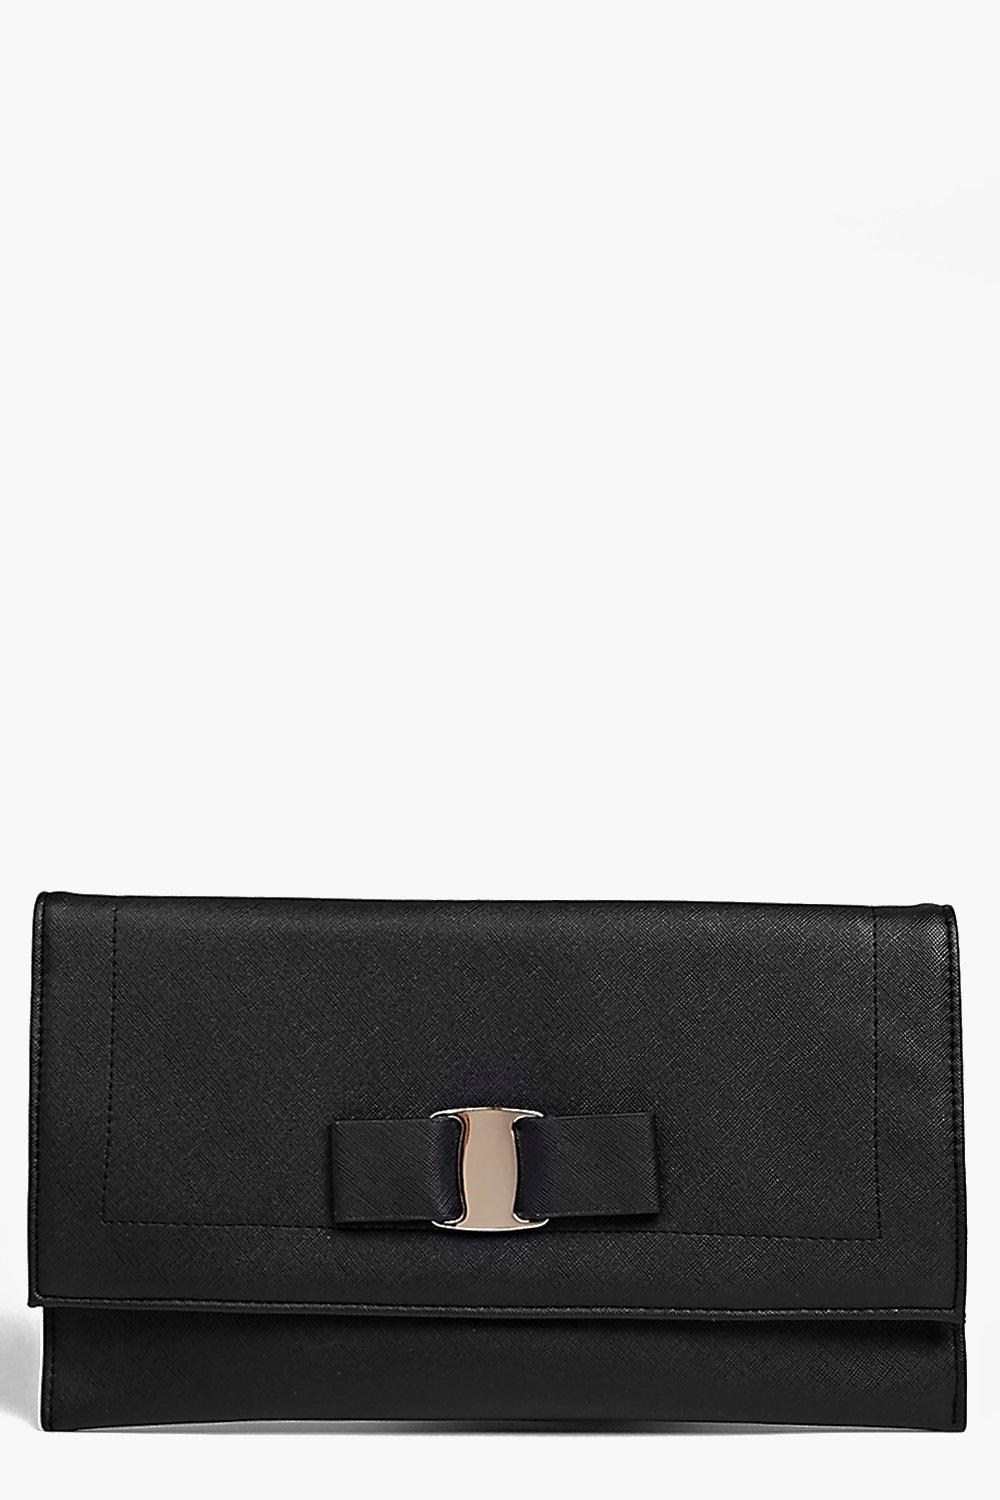 Tilly Bow Front Clutch Bag